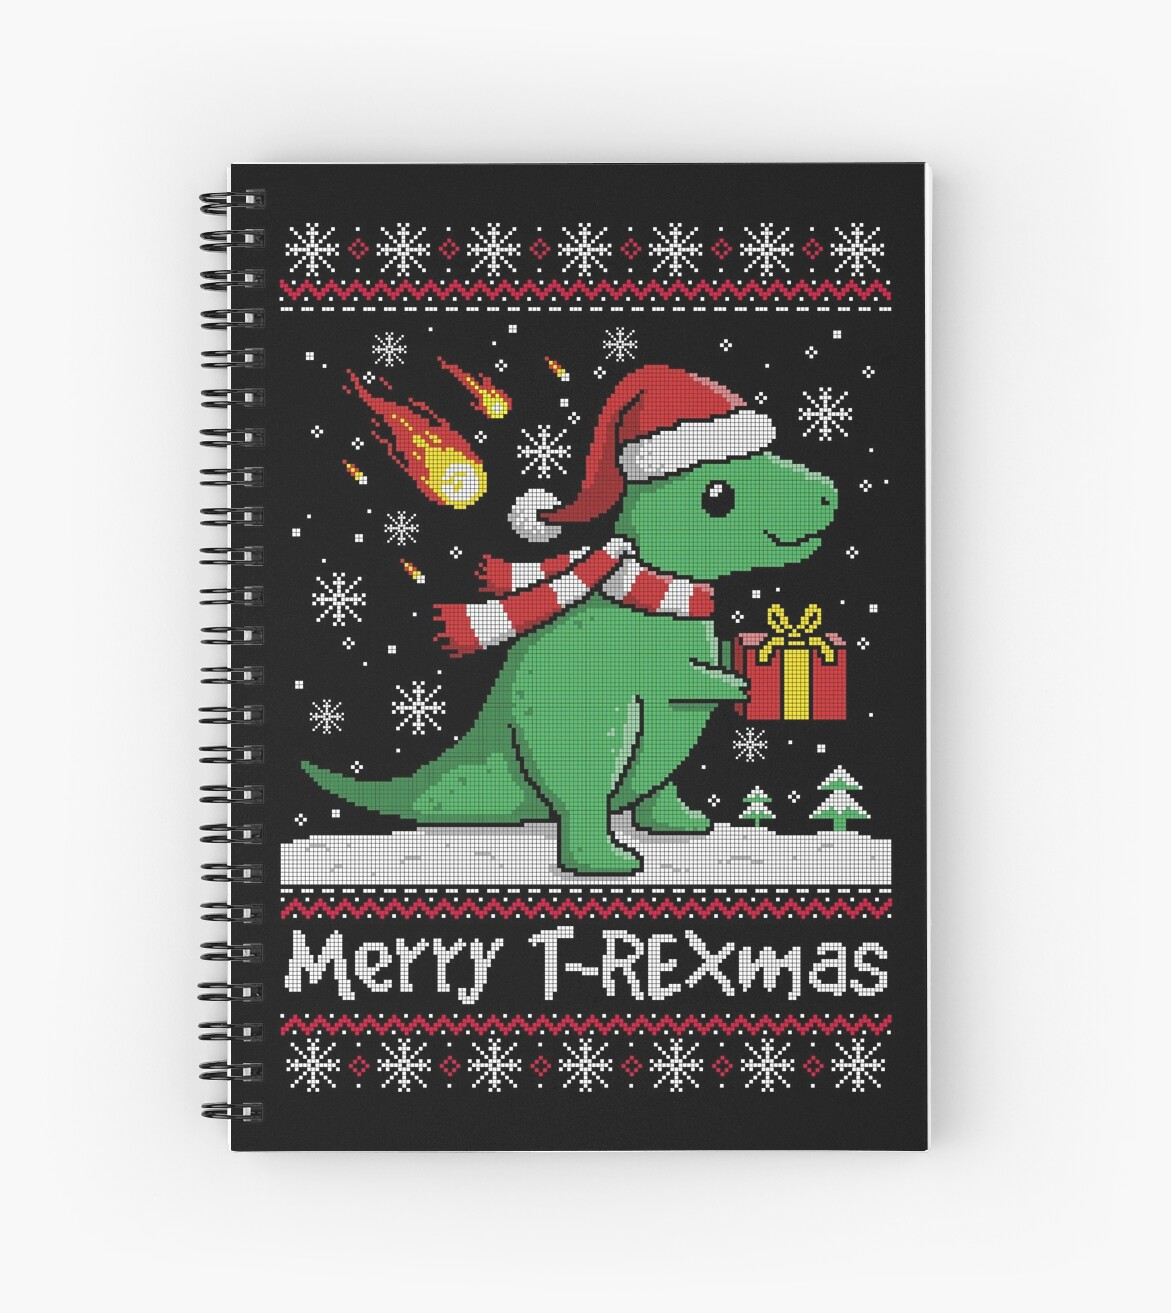 T Rex Ugly Christmas Sweater.Merry T Rex Mas Ugly Christmas Sweater Spiral Notebook By Nemimakeit